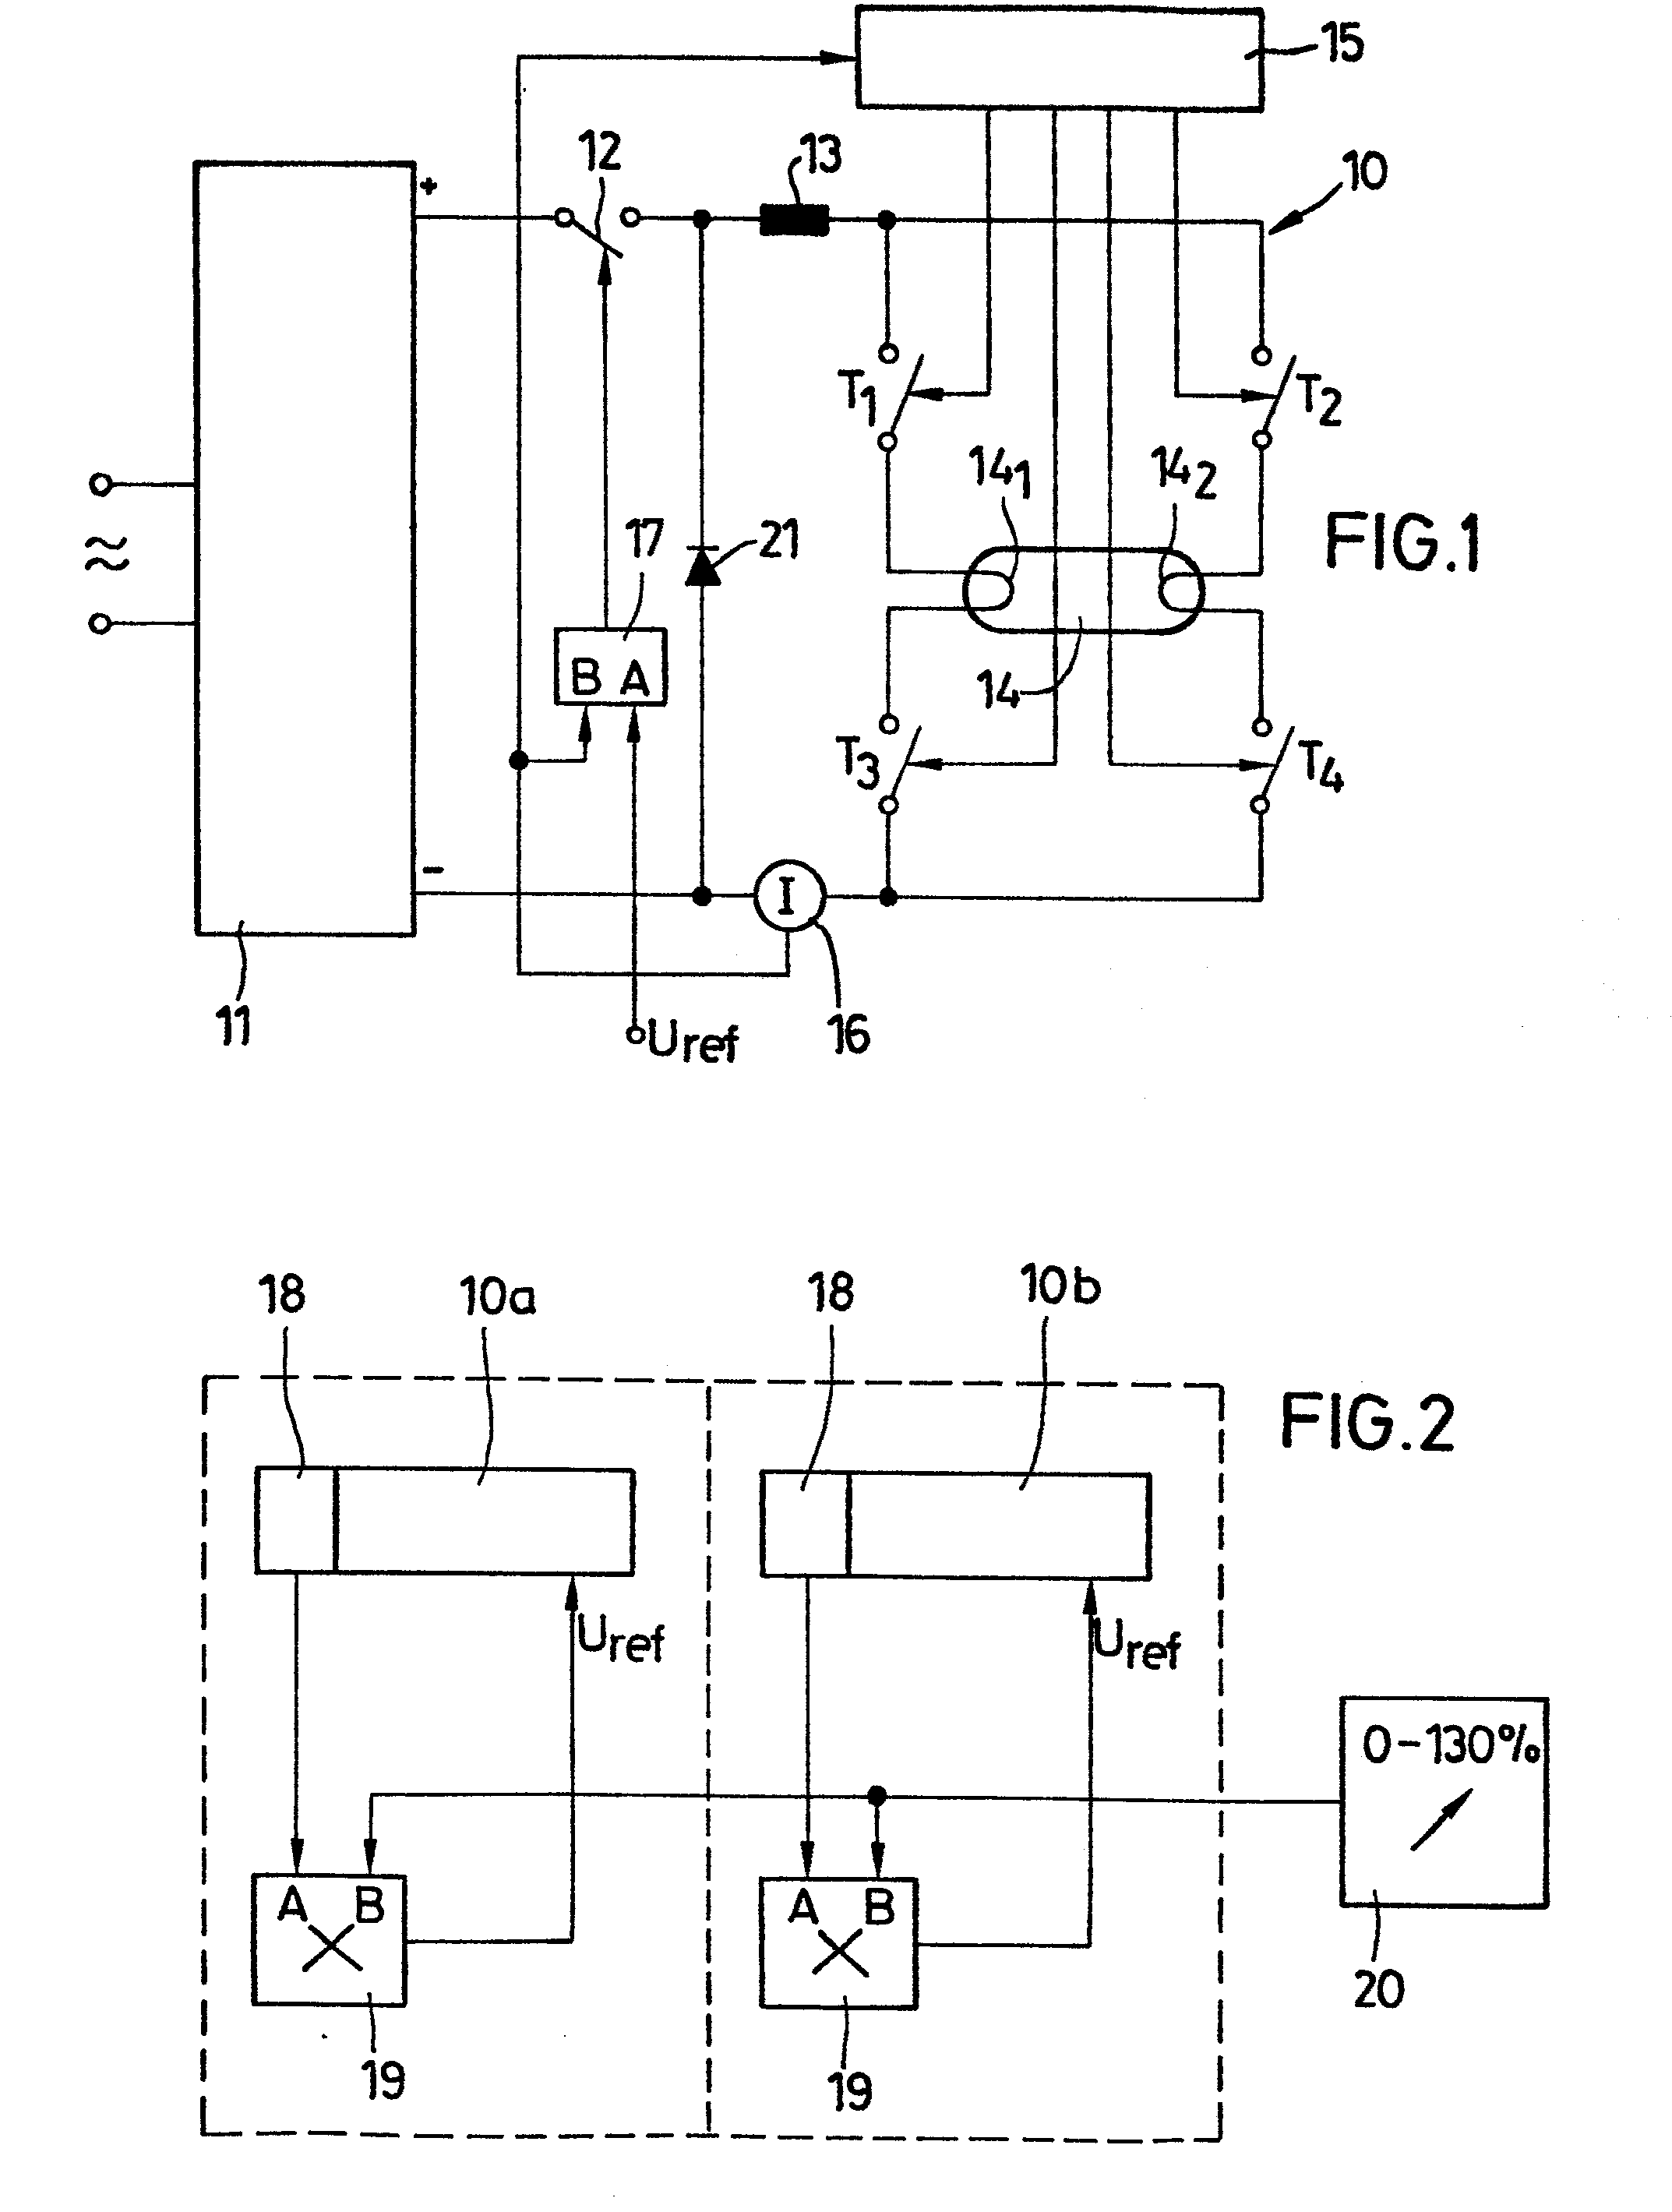 Patent Ep0208083a2 Dimmer Circuit For An Electronic Ballast Dimmable Dimming Feature Included Drawing